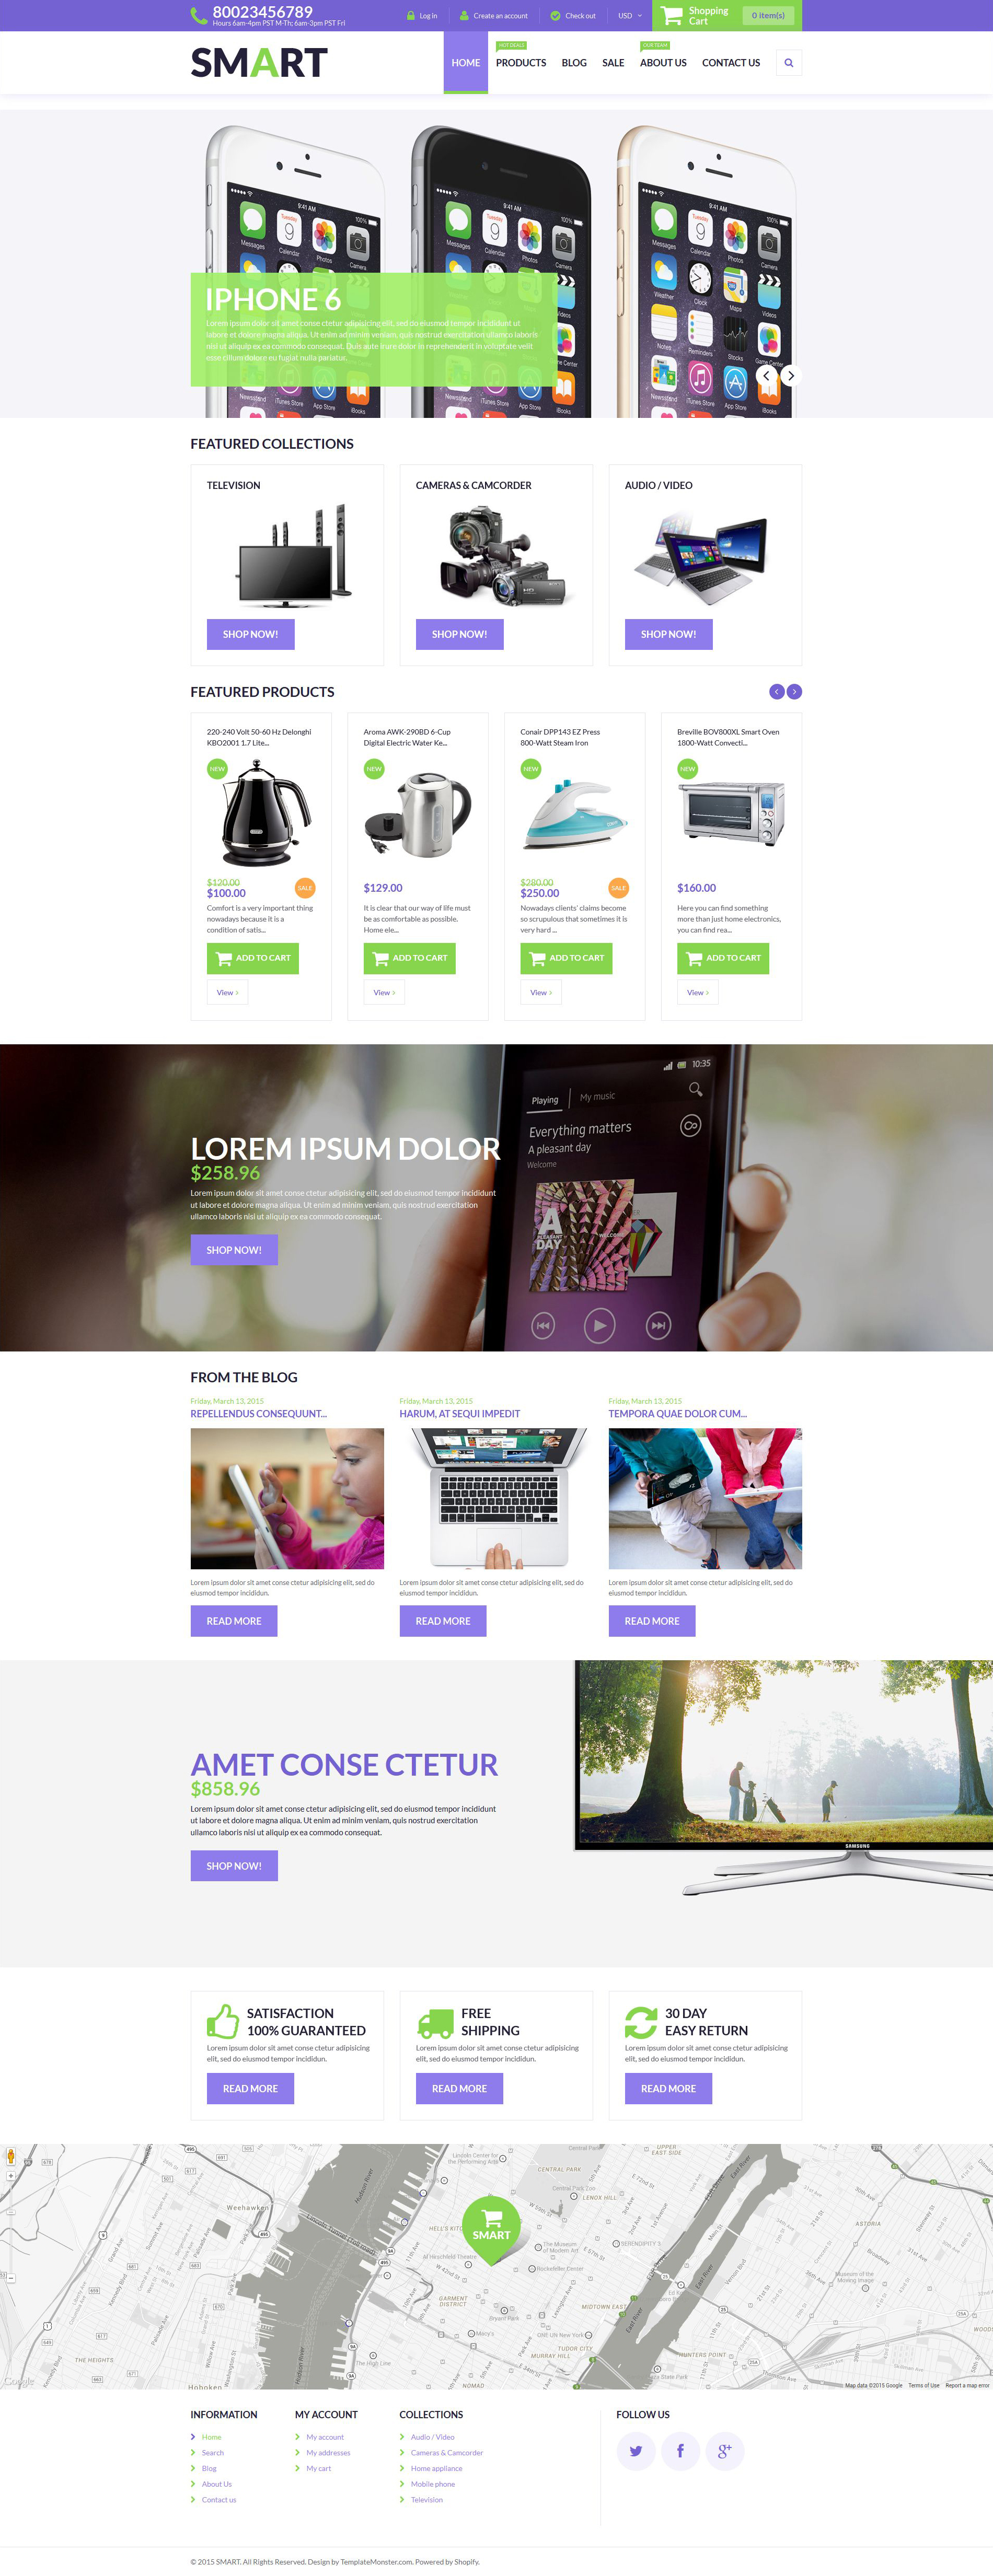 The Electronic Online Shop Shopify Design 53497, one of the best Shopify themes of its kind (electronics, most popular), also known as electronic online shop Shopify template, delivery Shopify template, computer Shopify template, office Shopify template, staff Shopify template, printer Shopify template, notebook Shopify template, laptop shipment Shopify template, desktop portable Shopify template, scanner Shopify template, camera Shopify template, monitor Shopify template, cable system Shopify template, technology Shopify template, processor Shopify template, installation Shopify template, hardware Shopify template, input Shopify template, device Shopify template, memory Shopify template, server Shopify template, accessory Shopify template, wireless Shopify template, PC connection and related with electronic online shop, delivery, computer, office, staff, printer, notebook, laptop shipment, desktop portable, scanner, camera, monitor, cable system, technology, processor, installation, hardware, input, device, memory, server, accessory, wireless, PC connection, etc.